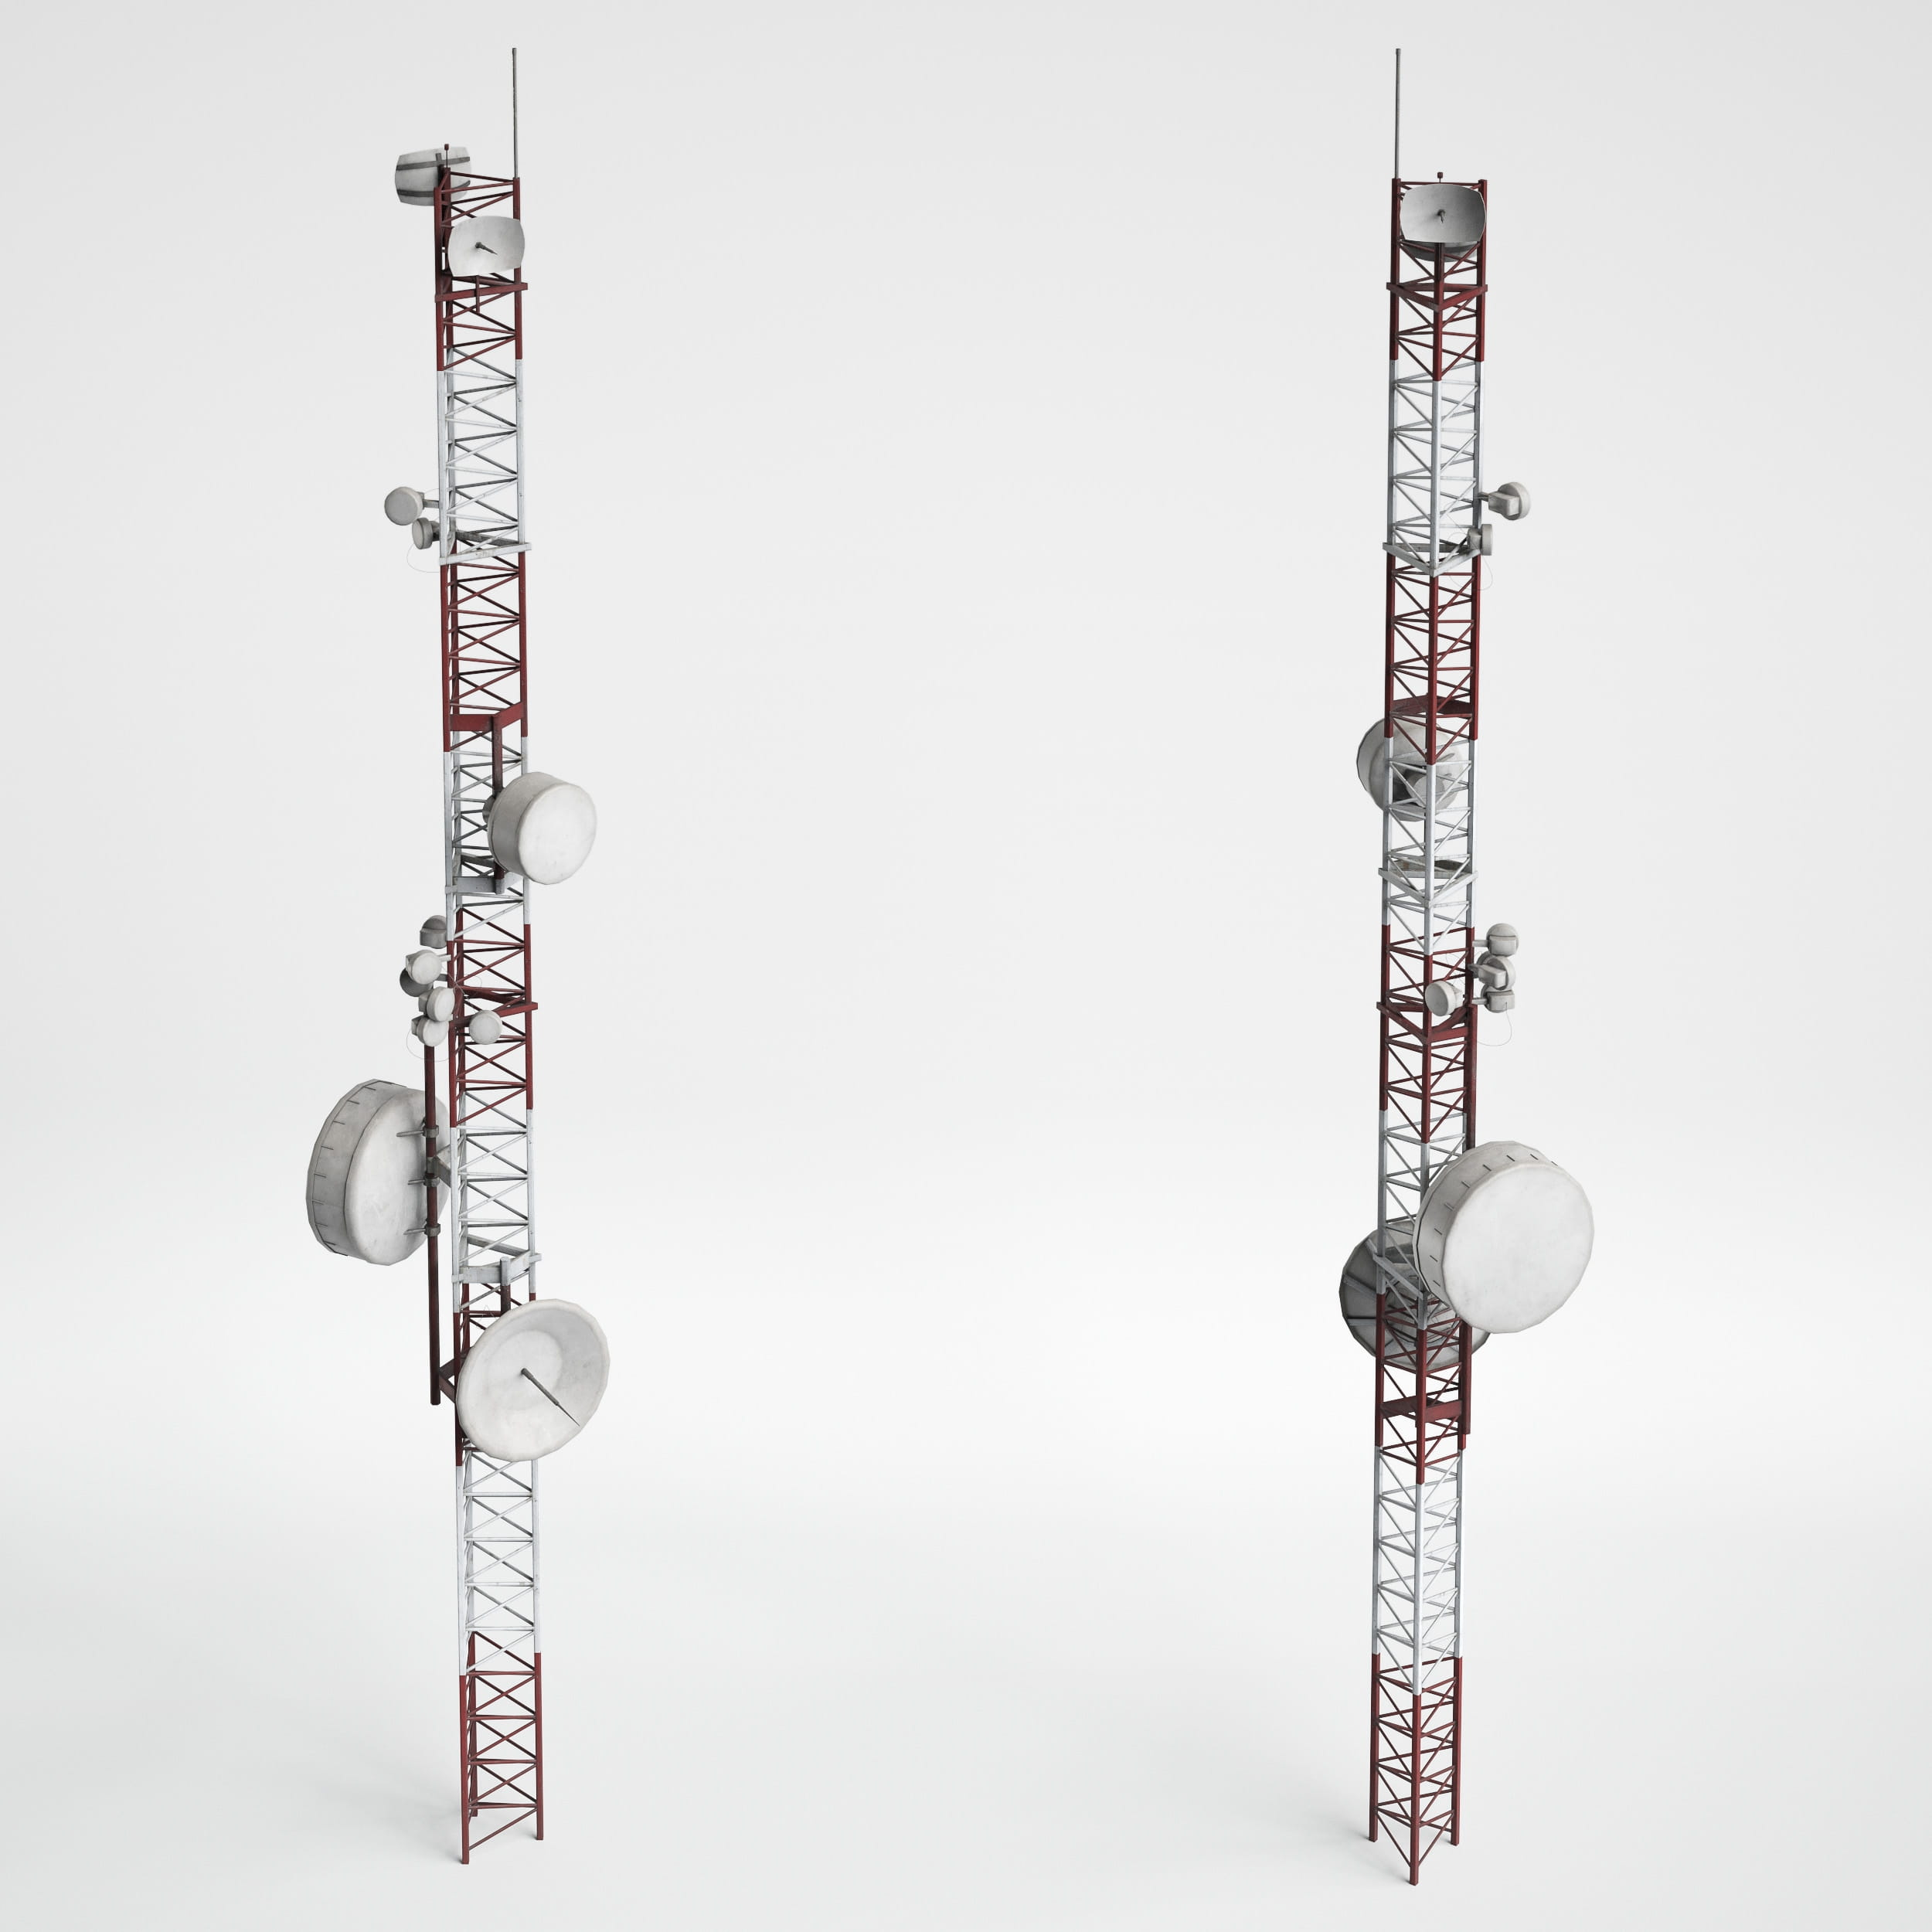 antenna towers 11 AM227 Archmodels